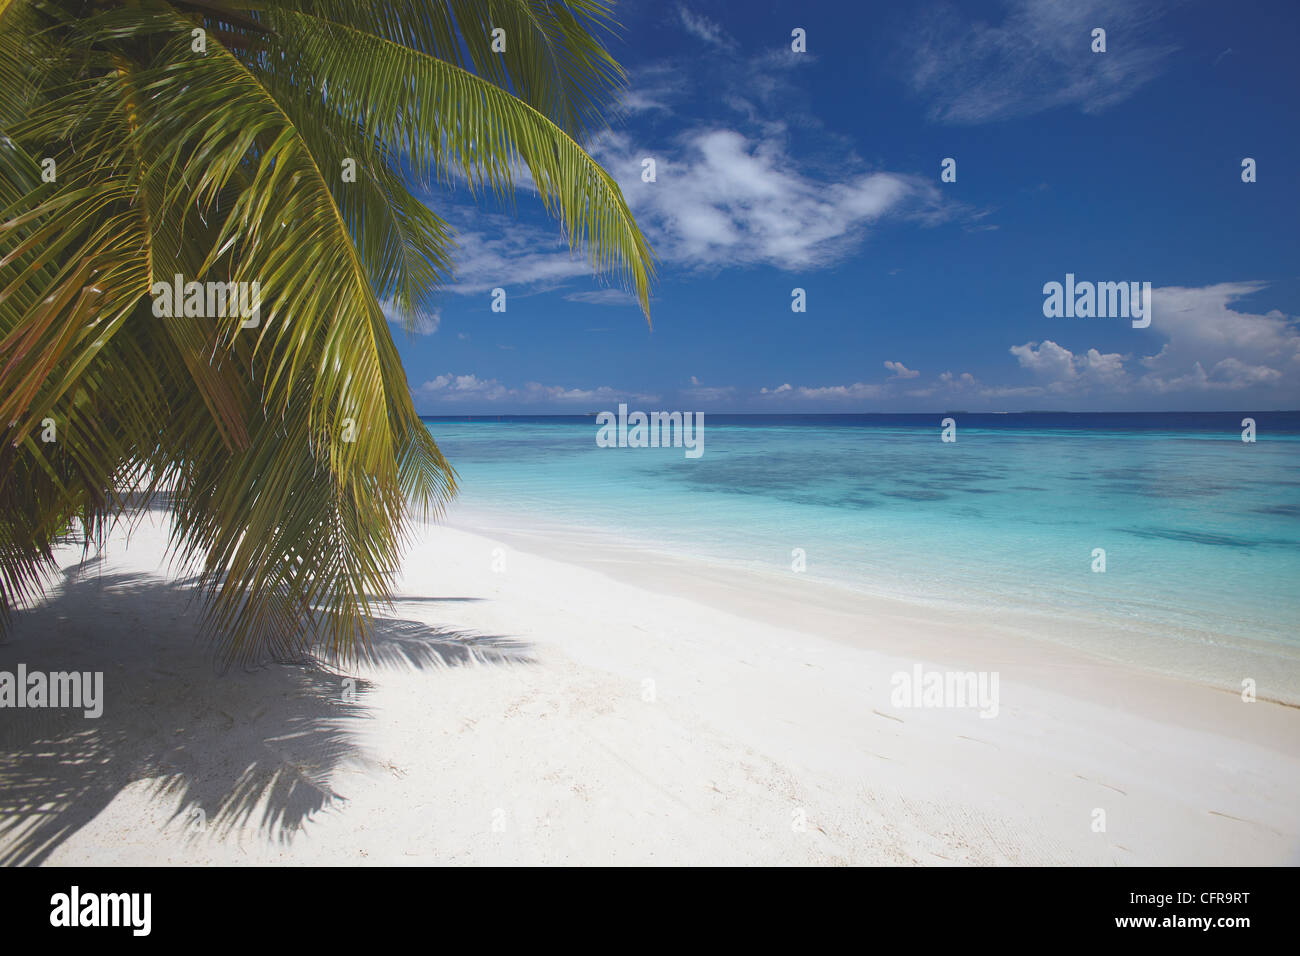 Plage vide on tropical island, Maldives, océan Indien, Asie Photo Stock